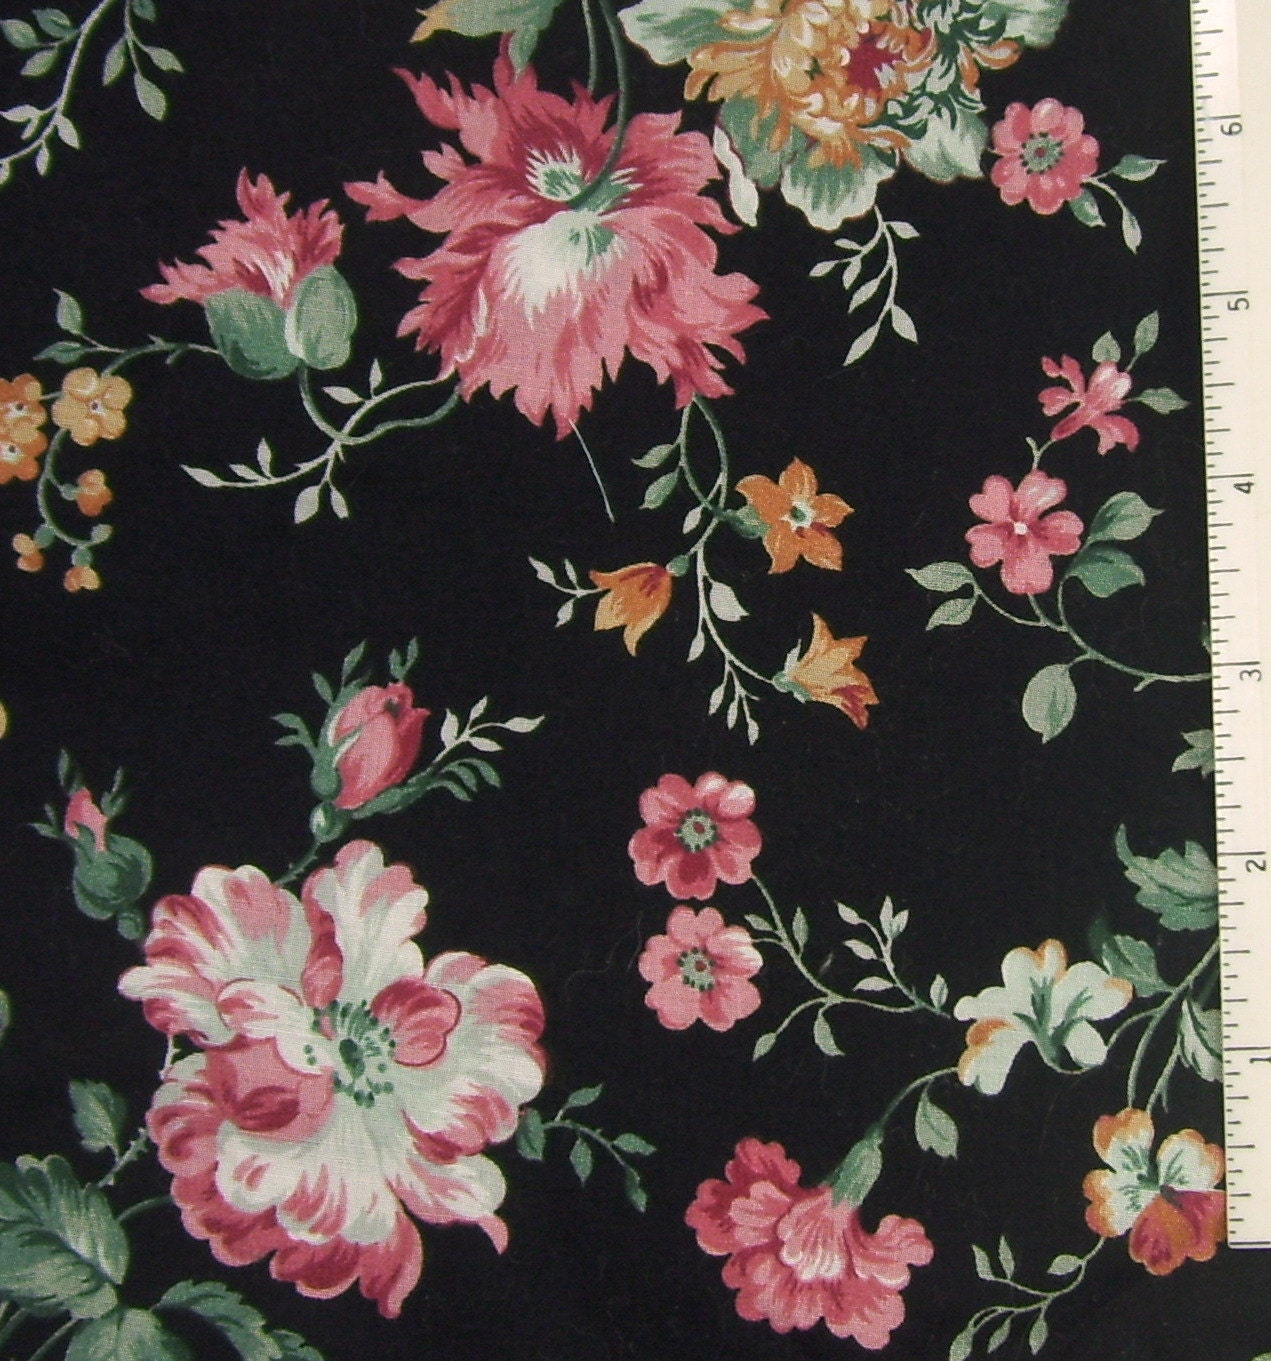 Fabric Cotton Black Pink Rose Floral Print Lightweight